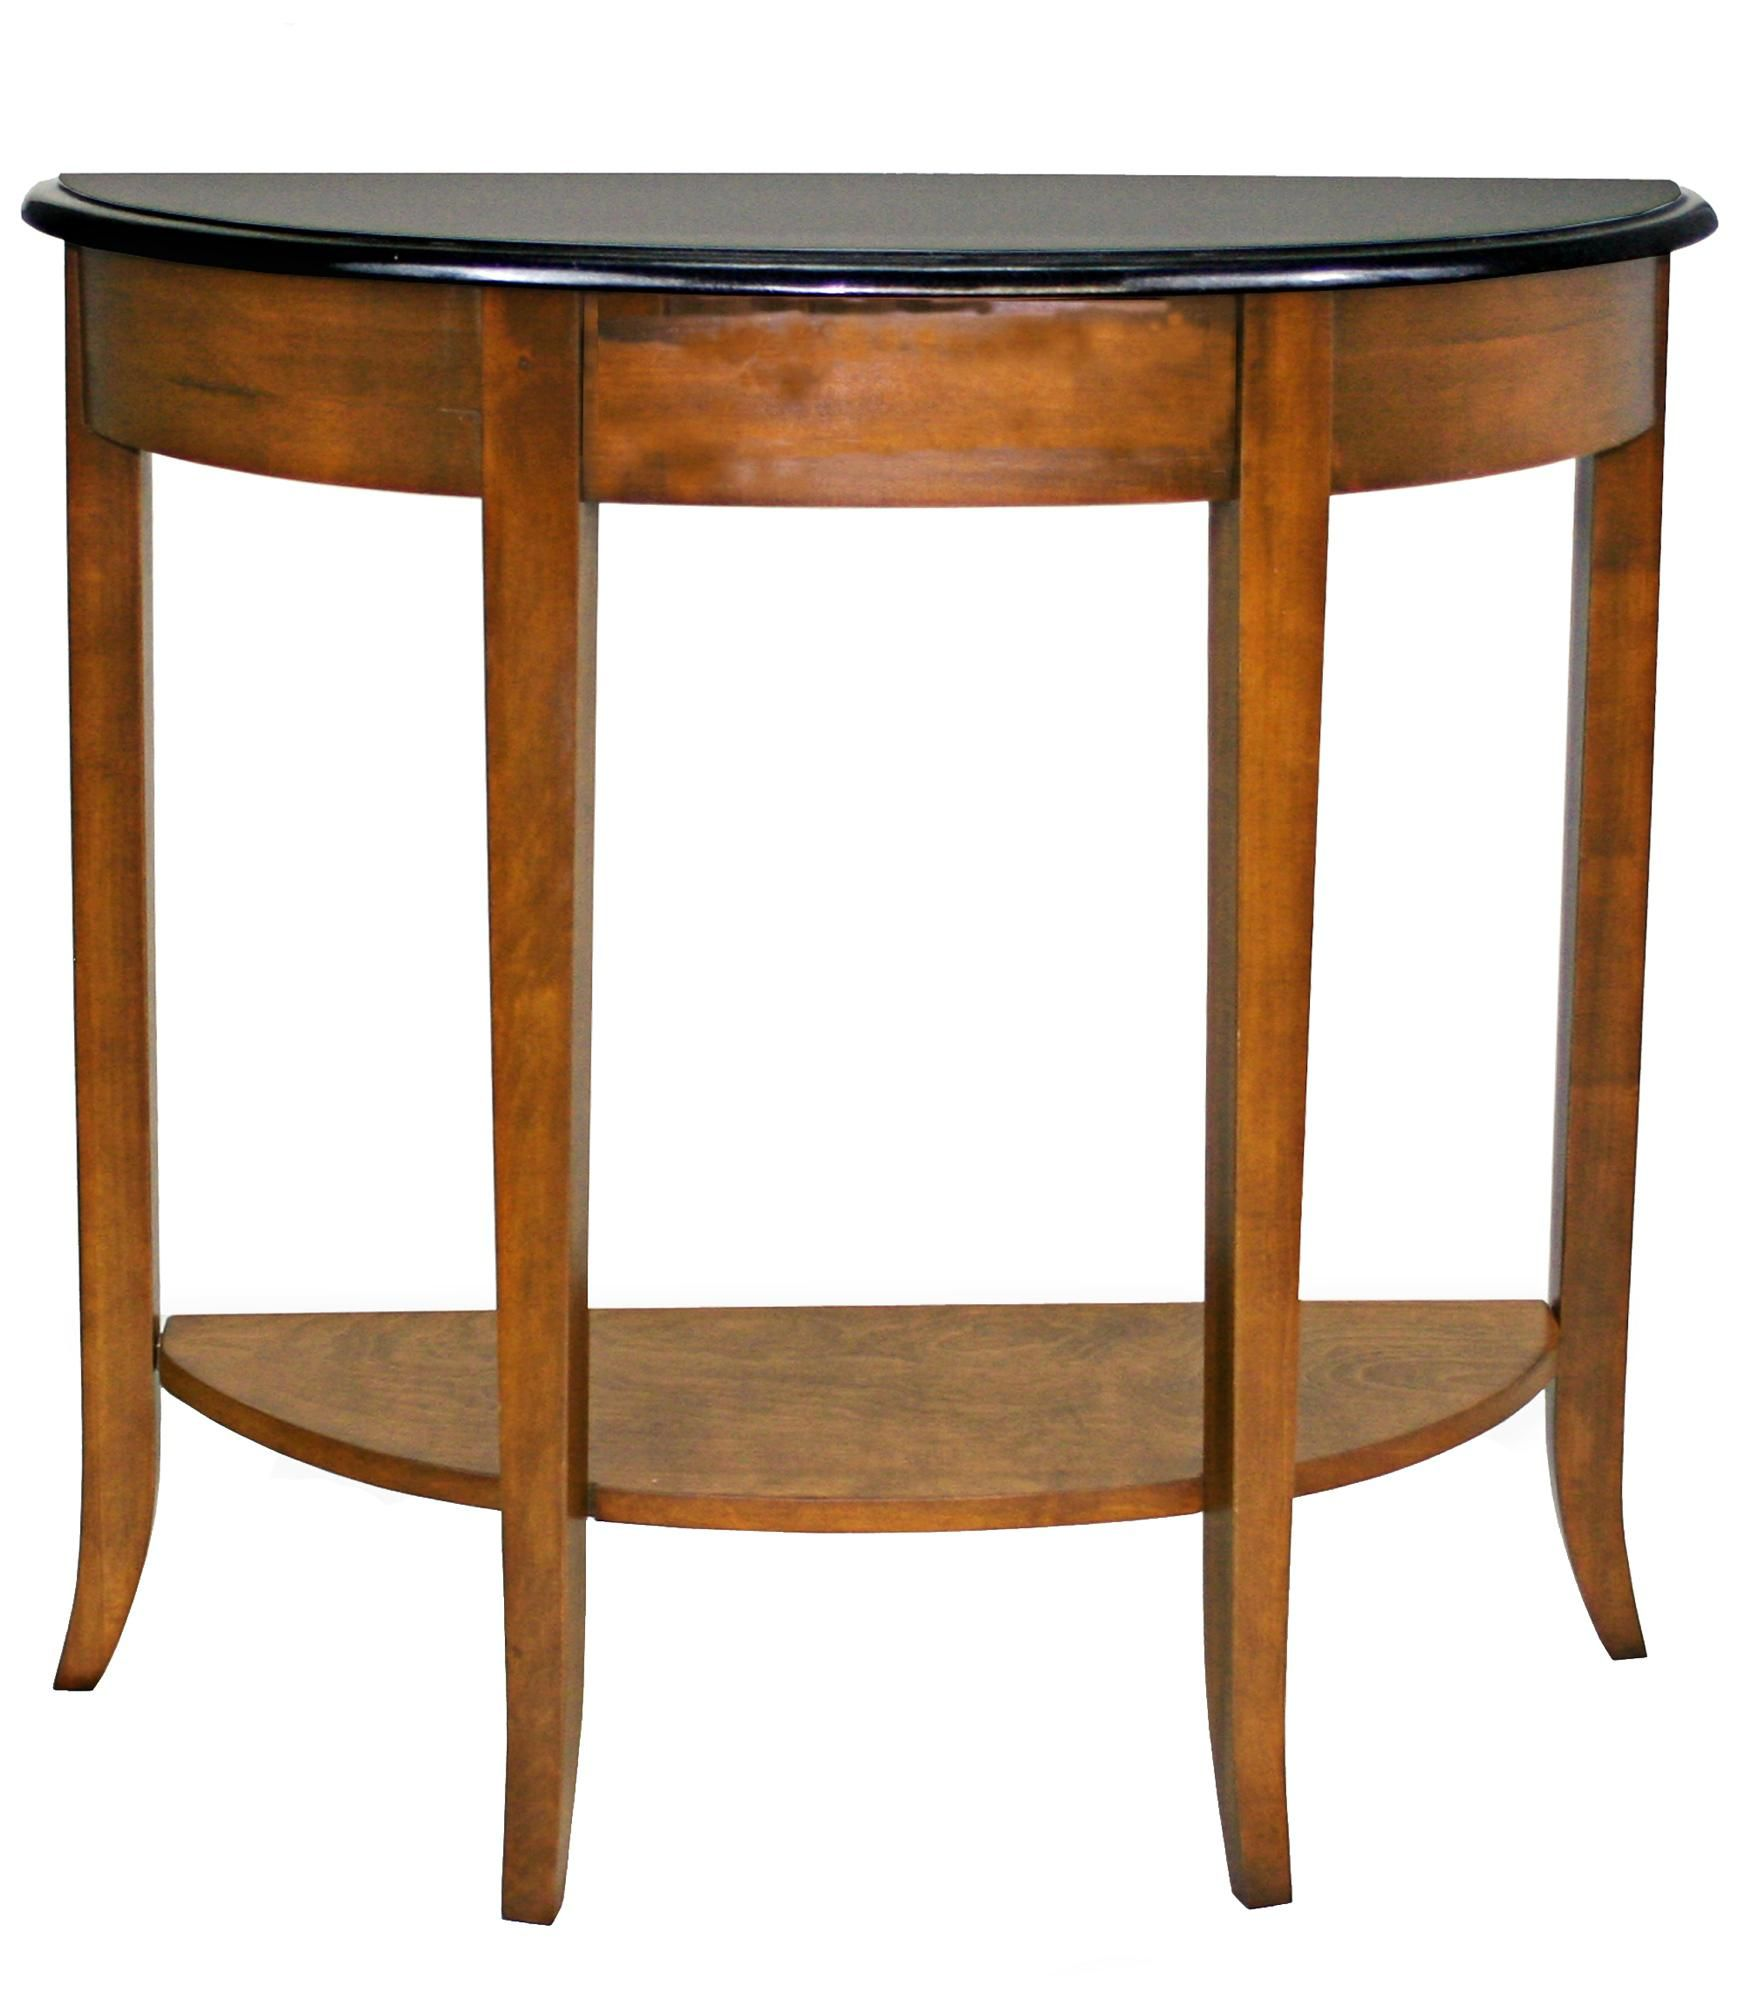 furniture marble top gold coffee table console upholstered hooker round accent simple with gallery sofa french style black metal end glass inexpensive tablecloths small dresser